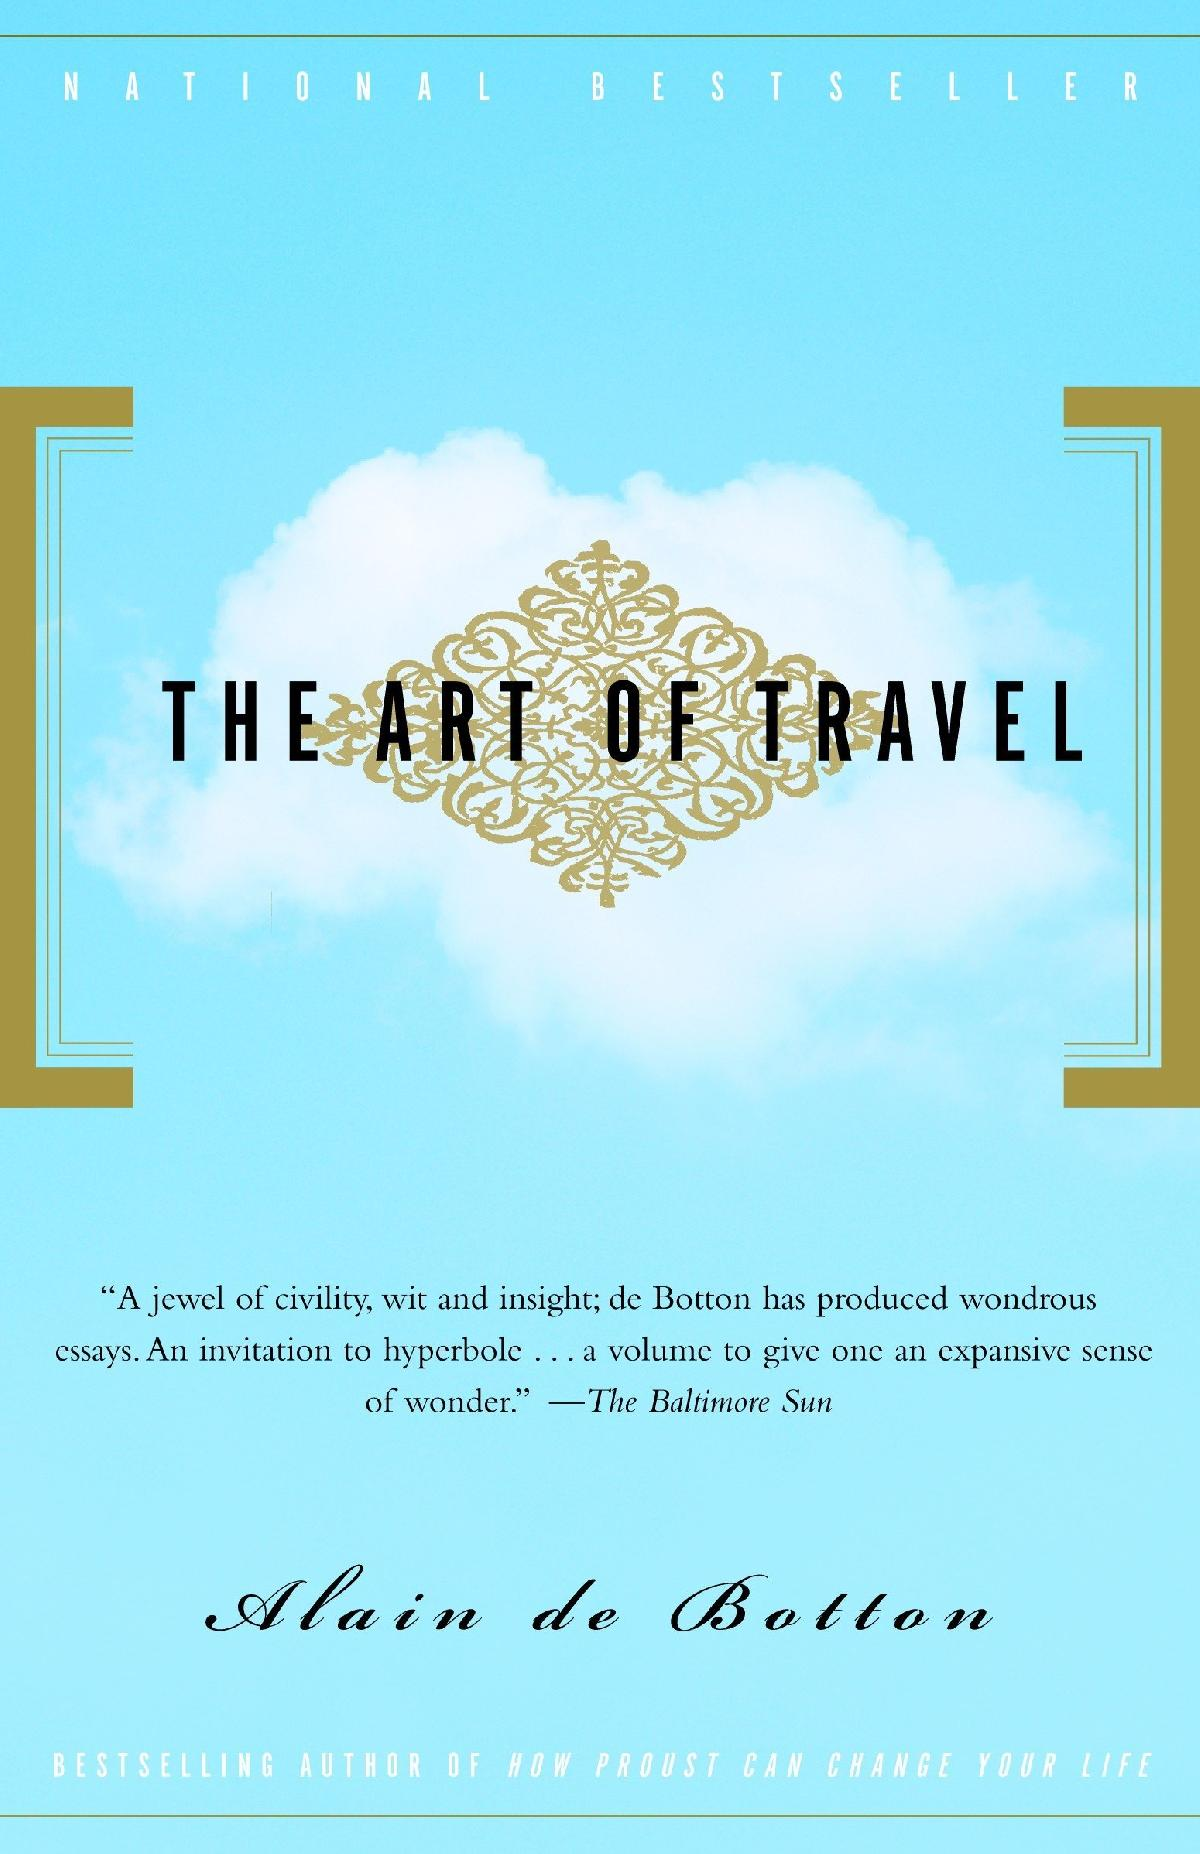 The Best Travel Books for Some Much-Needed Inspiration